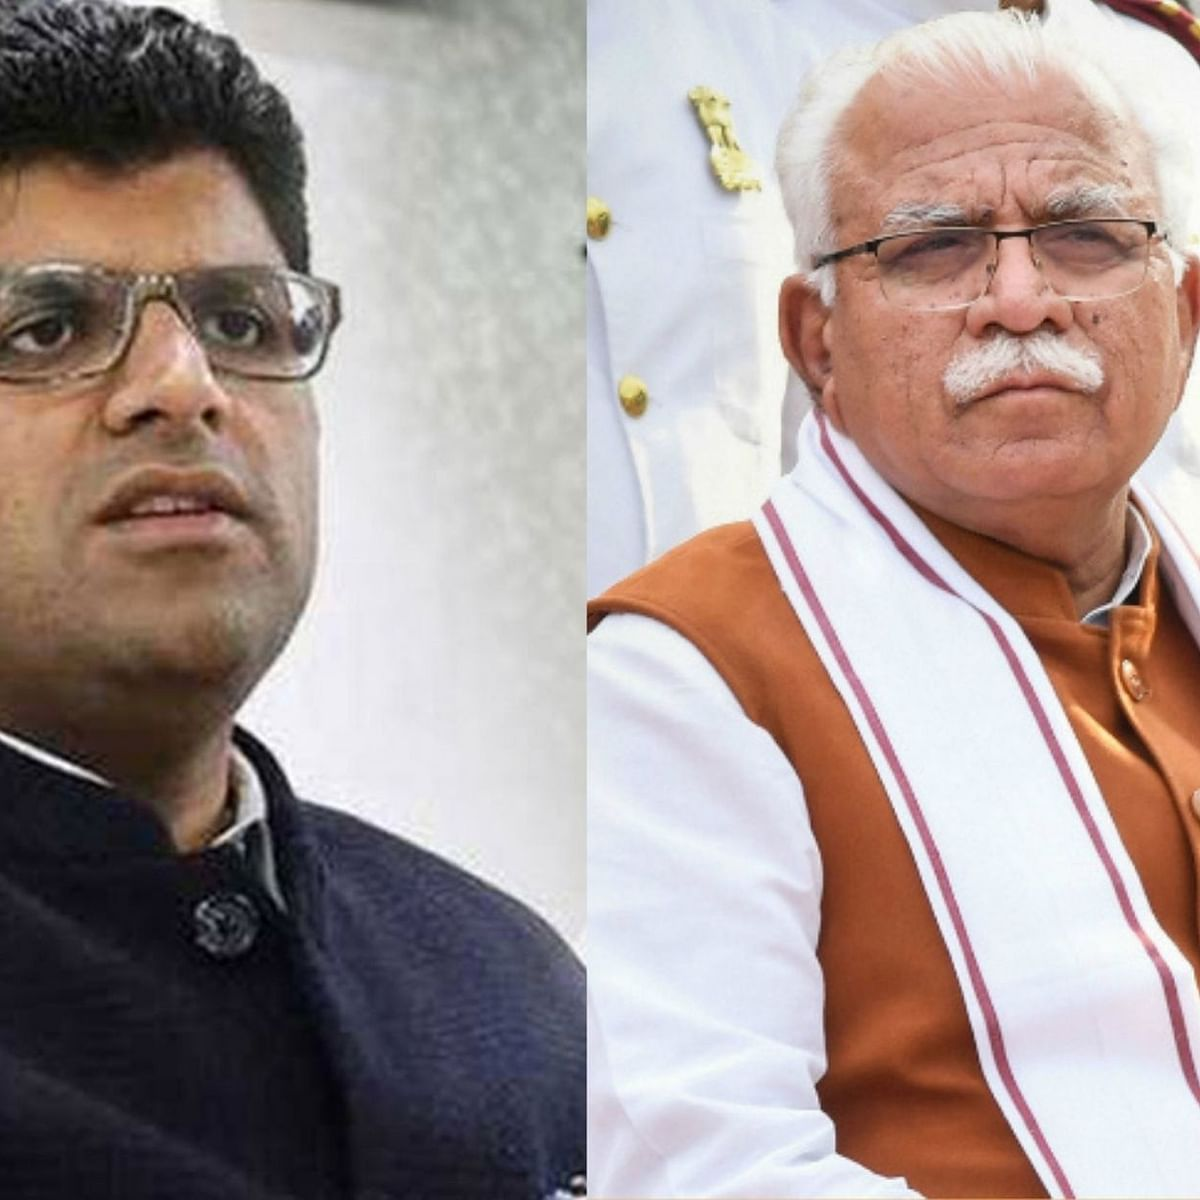 NH analysis : BJP govt in Haryana won the trust vote, but Jats' ire likely to lead to its eventual downfall